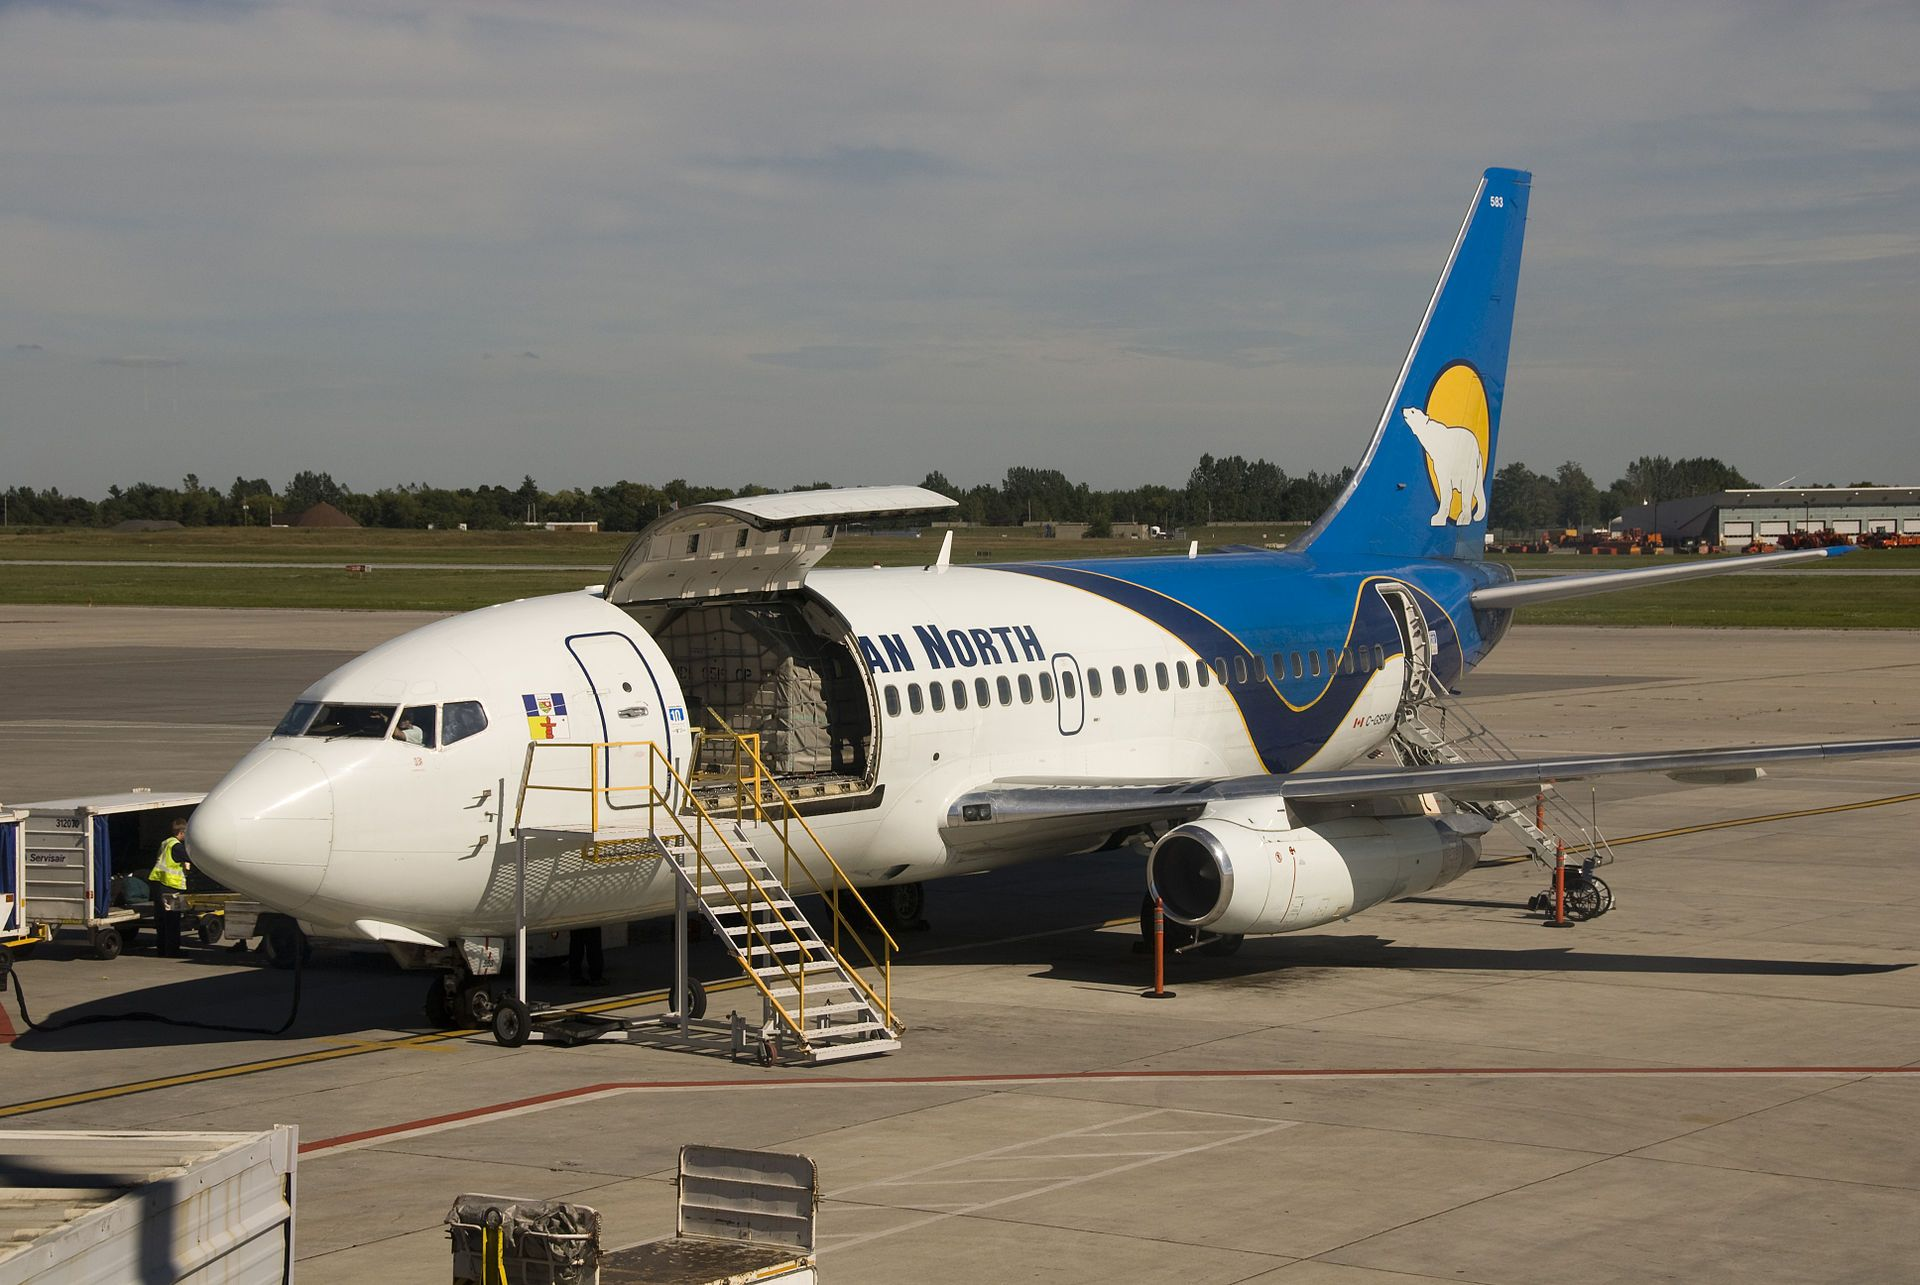 Amy Garcia Wikipedia canadian north b737-200 - boeing 737 - wikipedia, the free